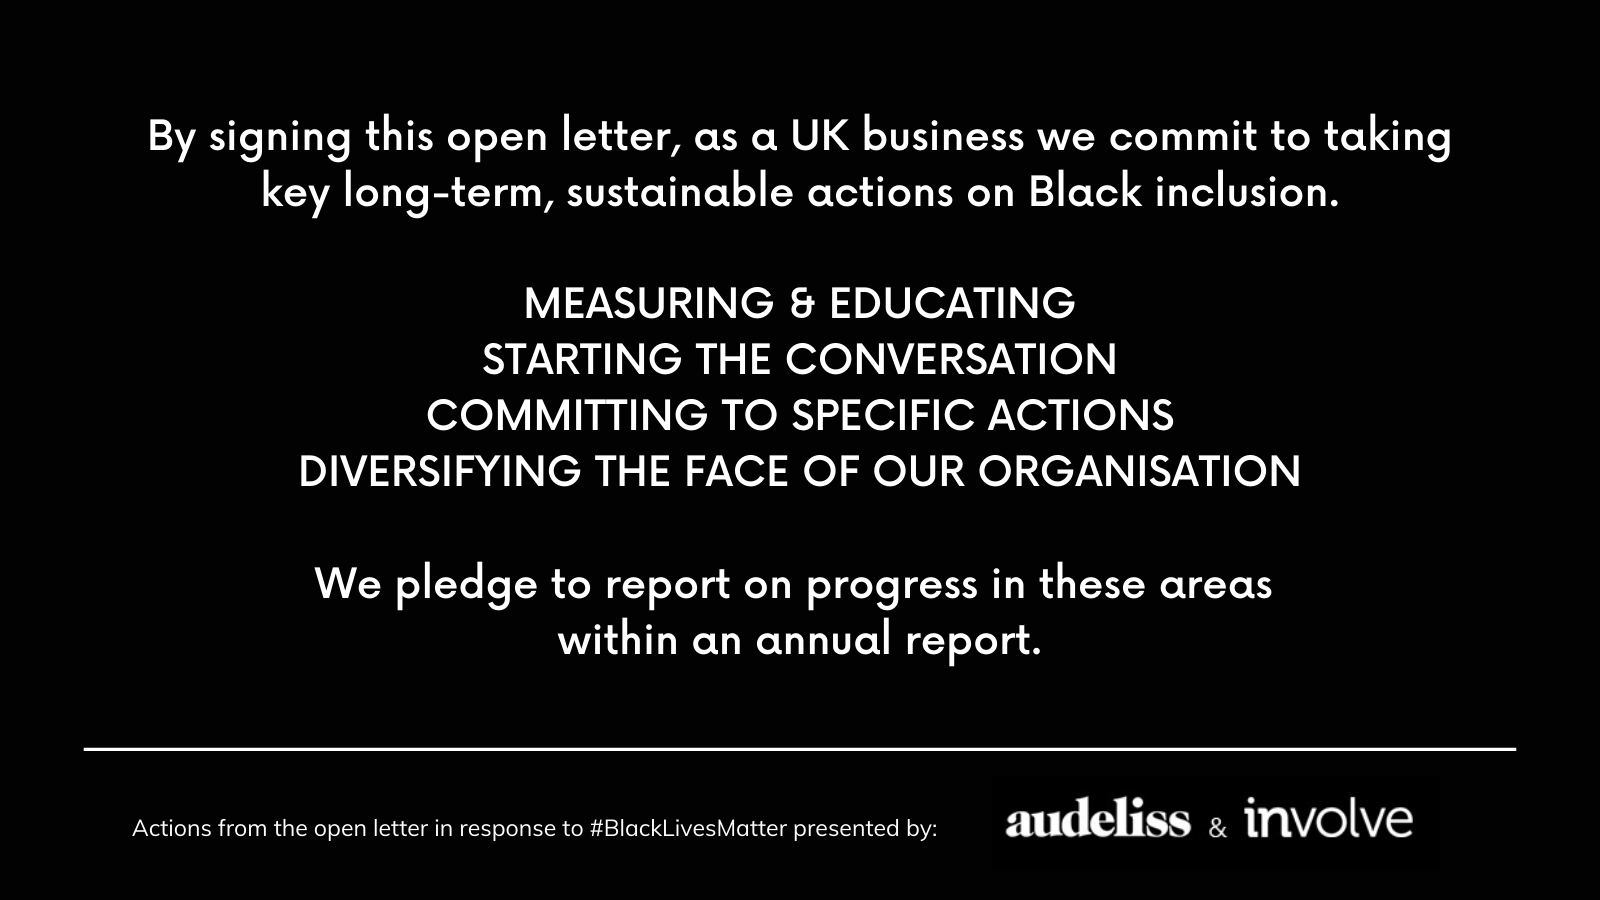 Metapraxis joins over 60 UK Business leaders to sign letter demanding action on Black inclusion in response to #blacklivesmatter